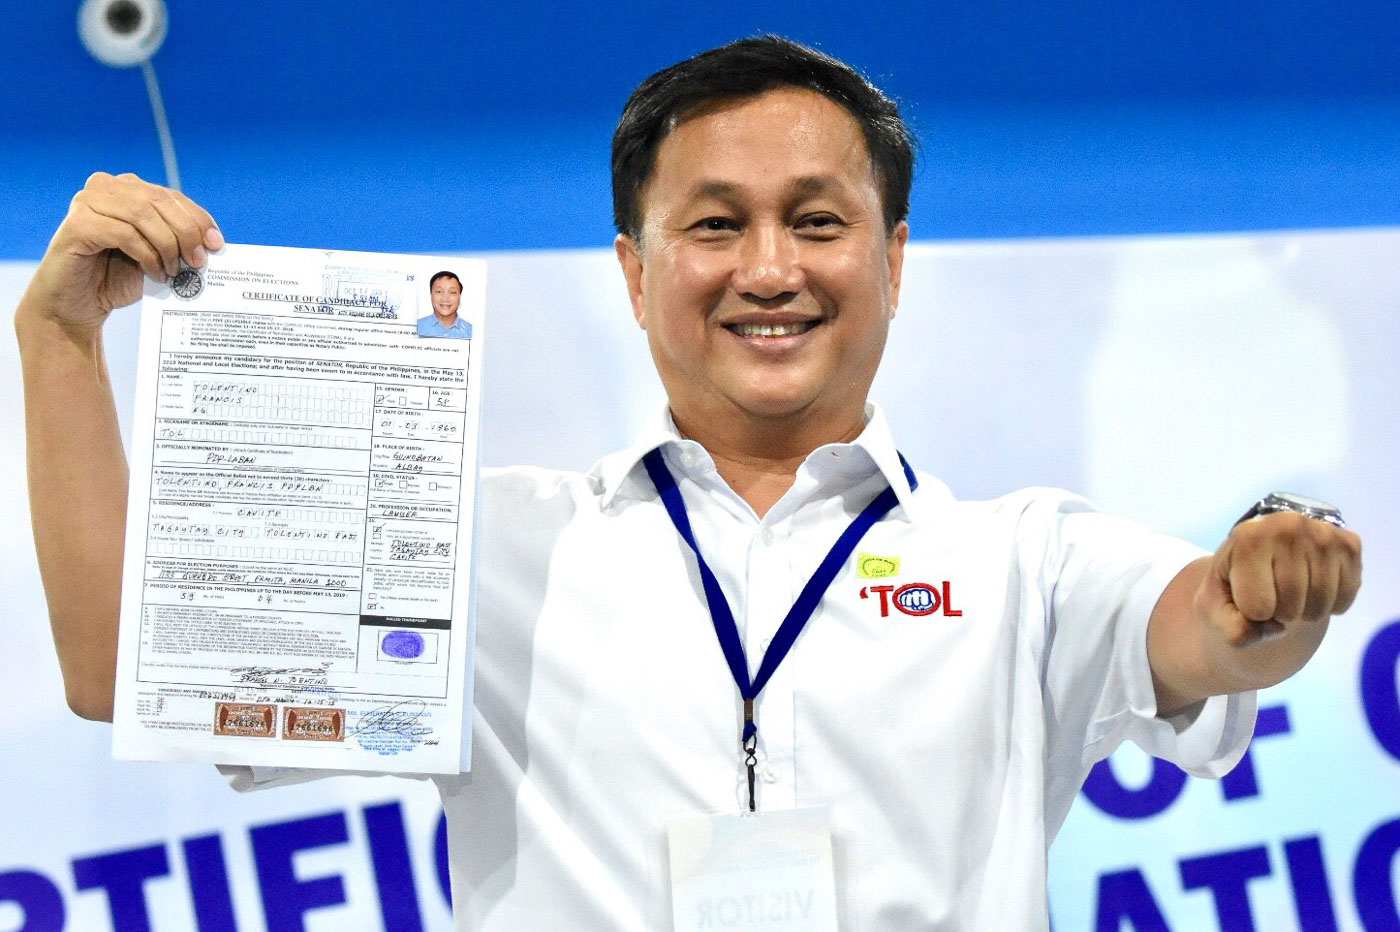 Former MMDA chairman Francis tolentino files his certificate of candidacy for senator at the Comelec office in Manila on October 17, 2018. Photo by Angie de Silva/Rappler